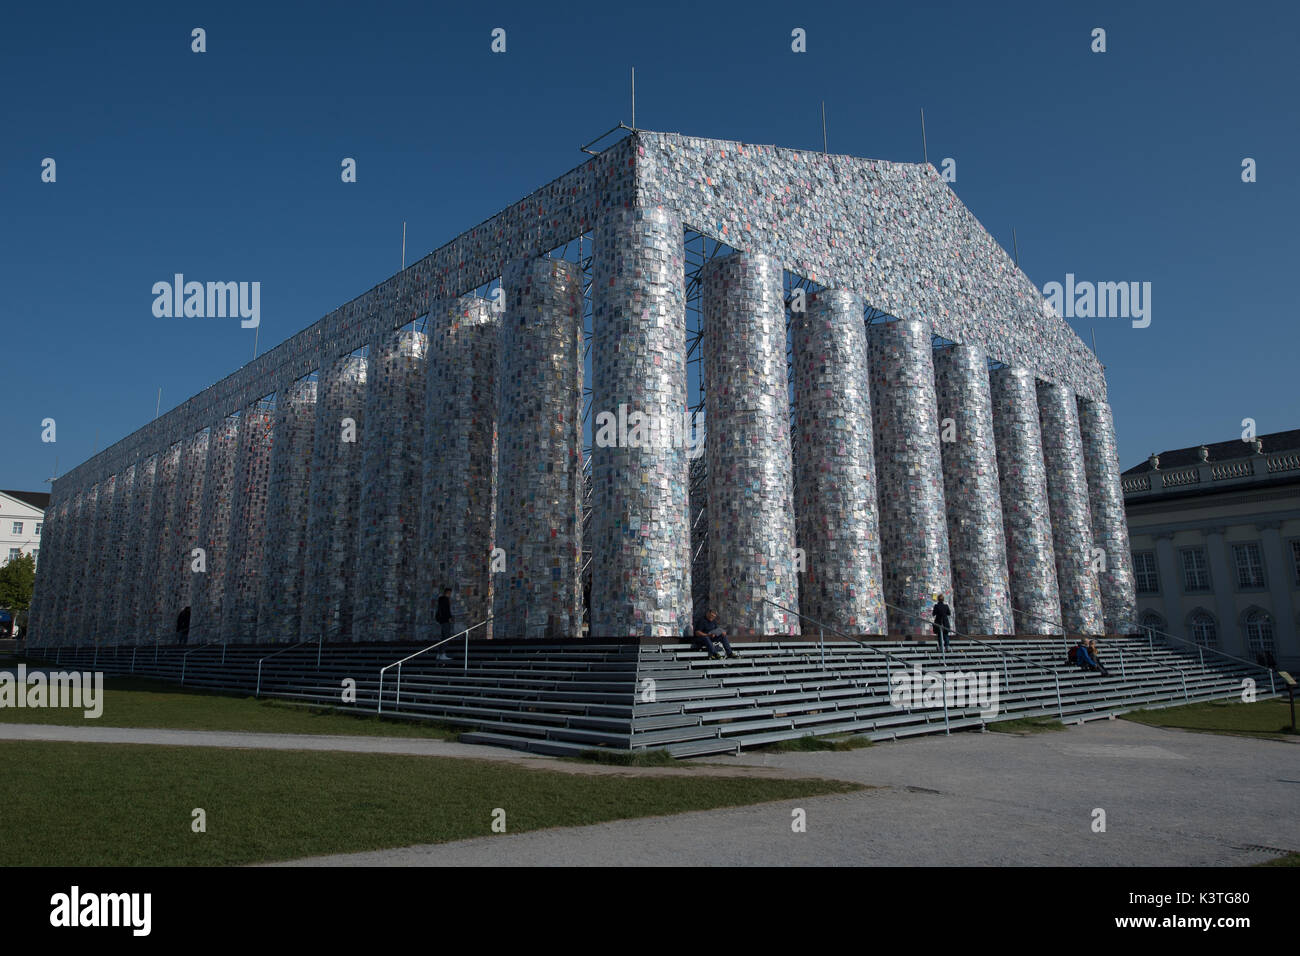 Forbidden books wrapped in plastic hang on the finalized documenta artwork 'The Parthenon of Books' in Kassel, Germany, 4 September 2017. The reconstruction of the Parthenon temple by Argentinian artist Marta Minujin is one of the biggest projects of the documenta. The documenta 14 in Kassel continues until 17 September 2017. Photo: Swen Pförtner/dpa - Stock Image